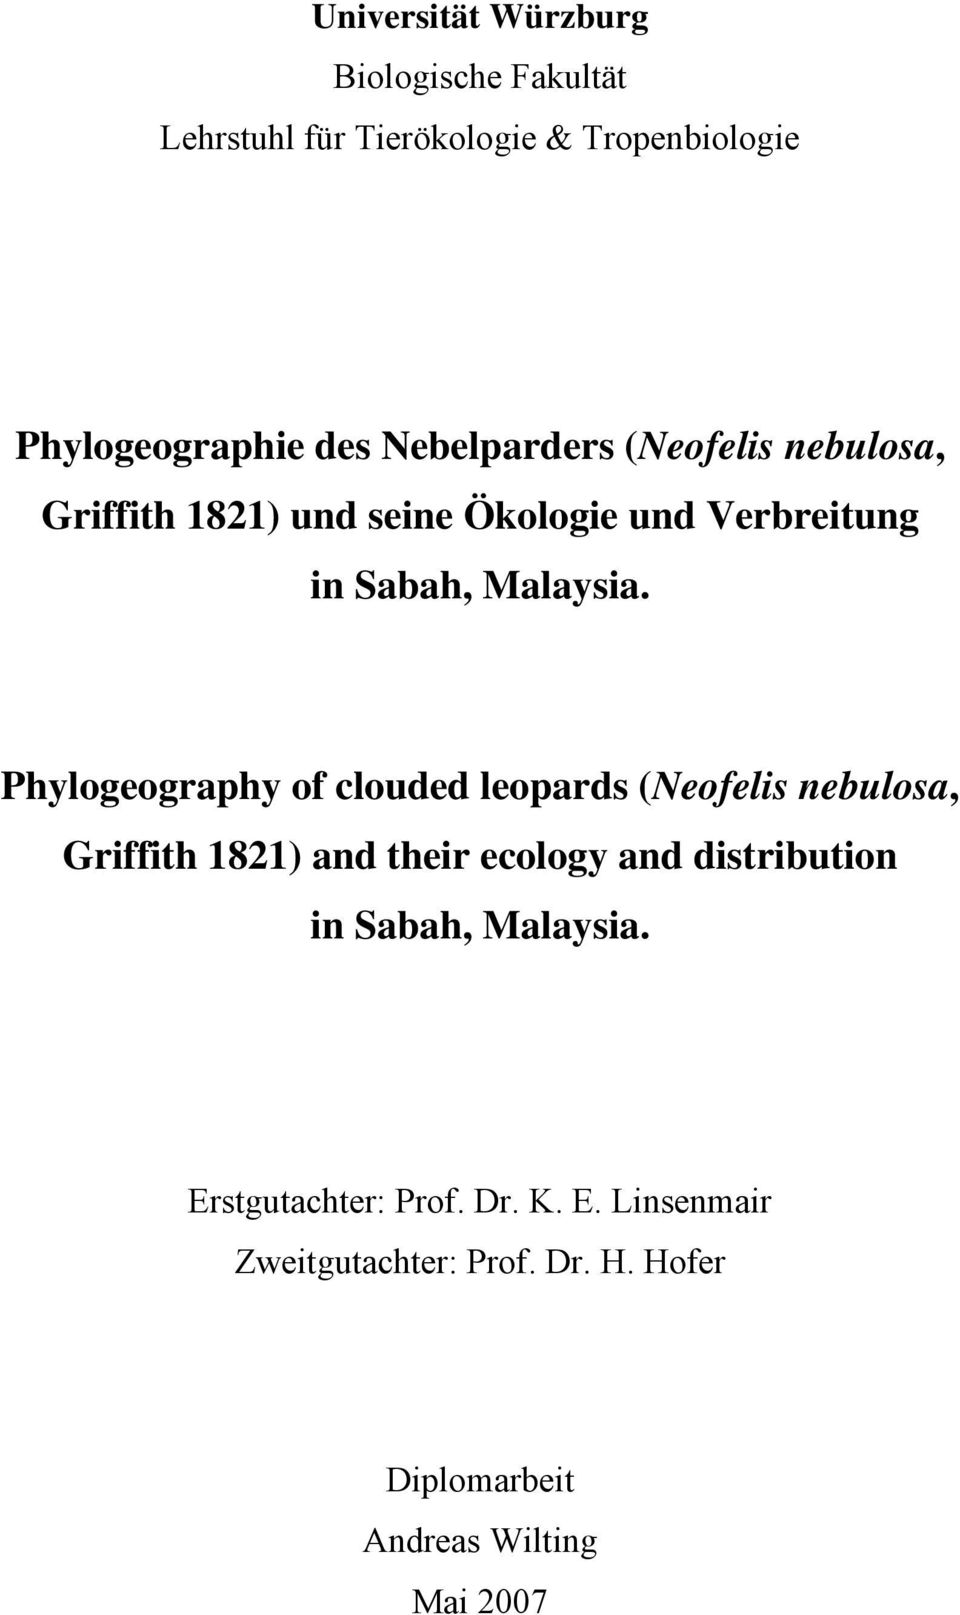 Phylogeography of clouded leopards (Neofelis nebulosa, Griffith 1821) and their ecology and distribution in